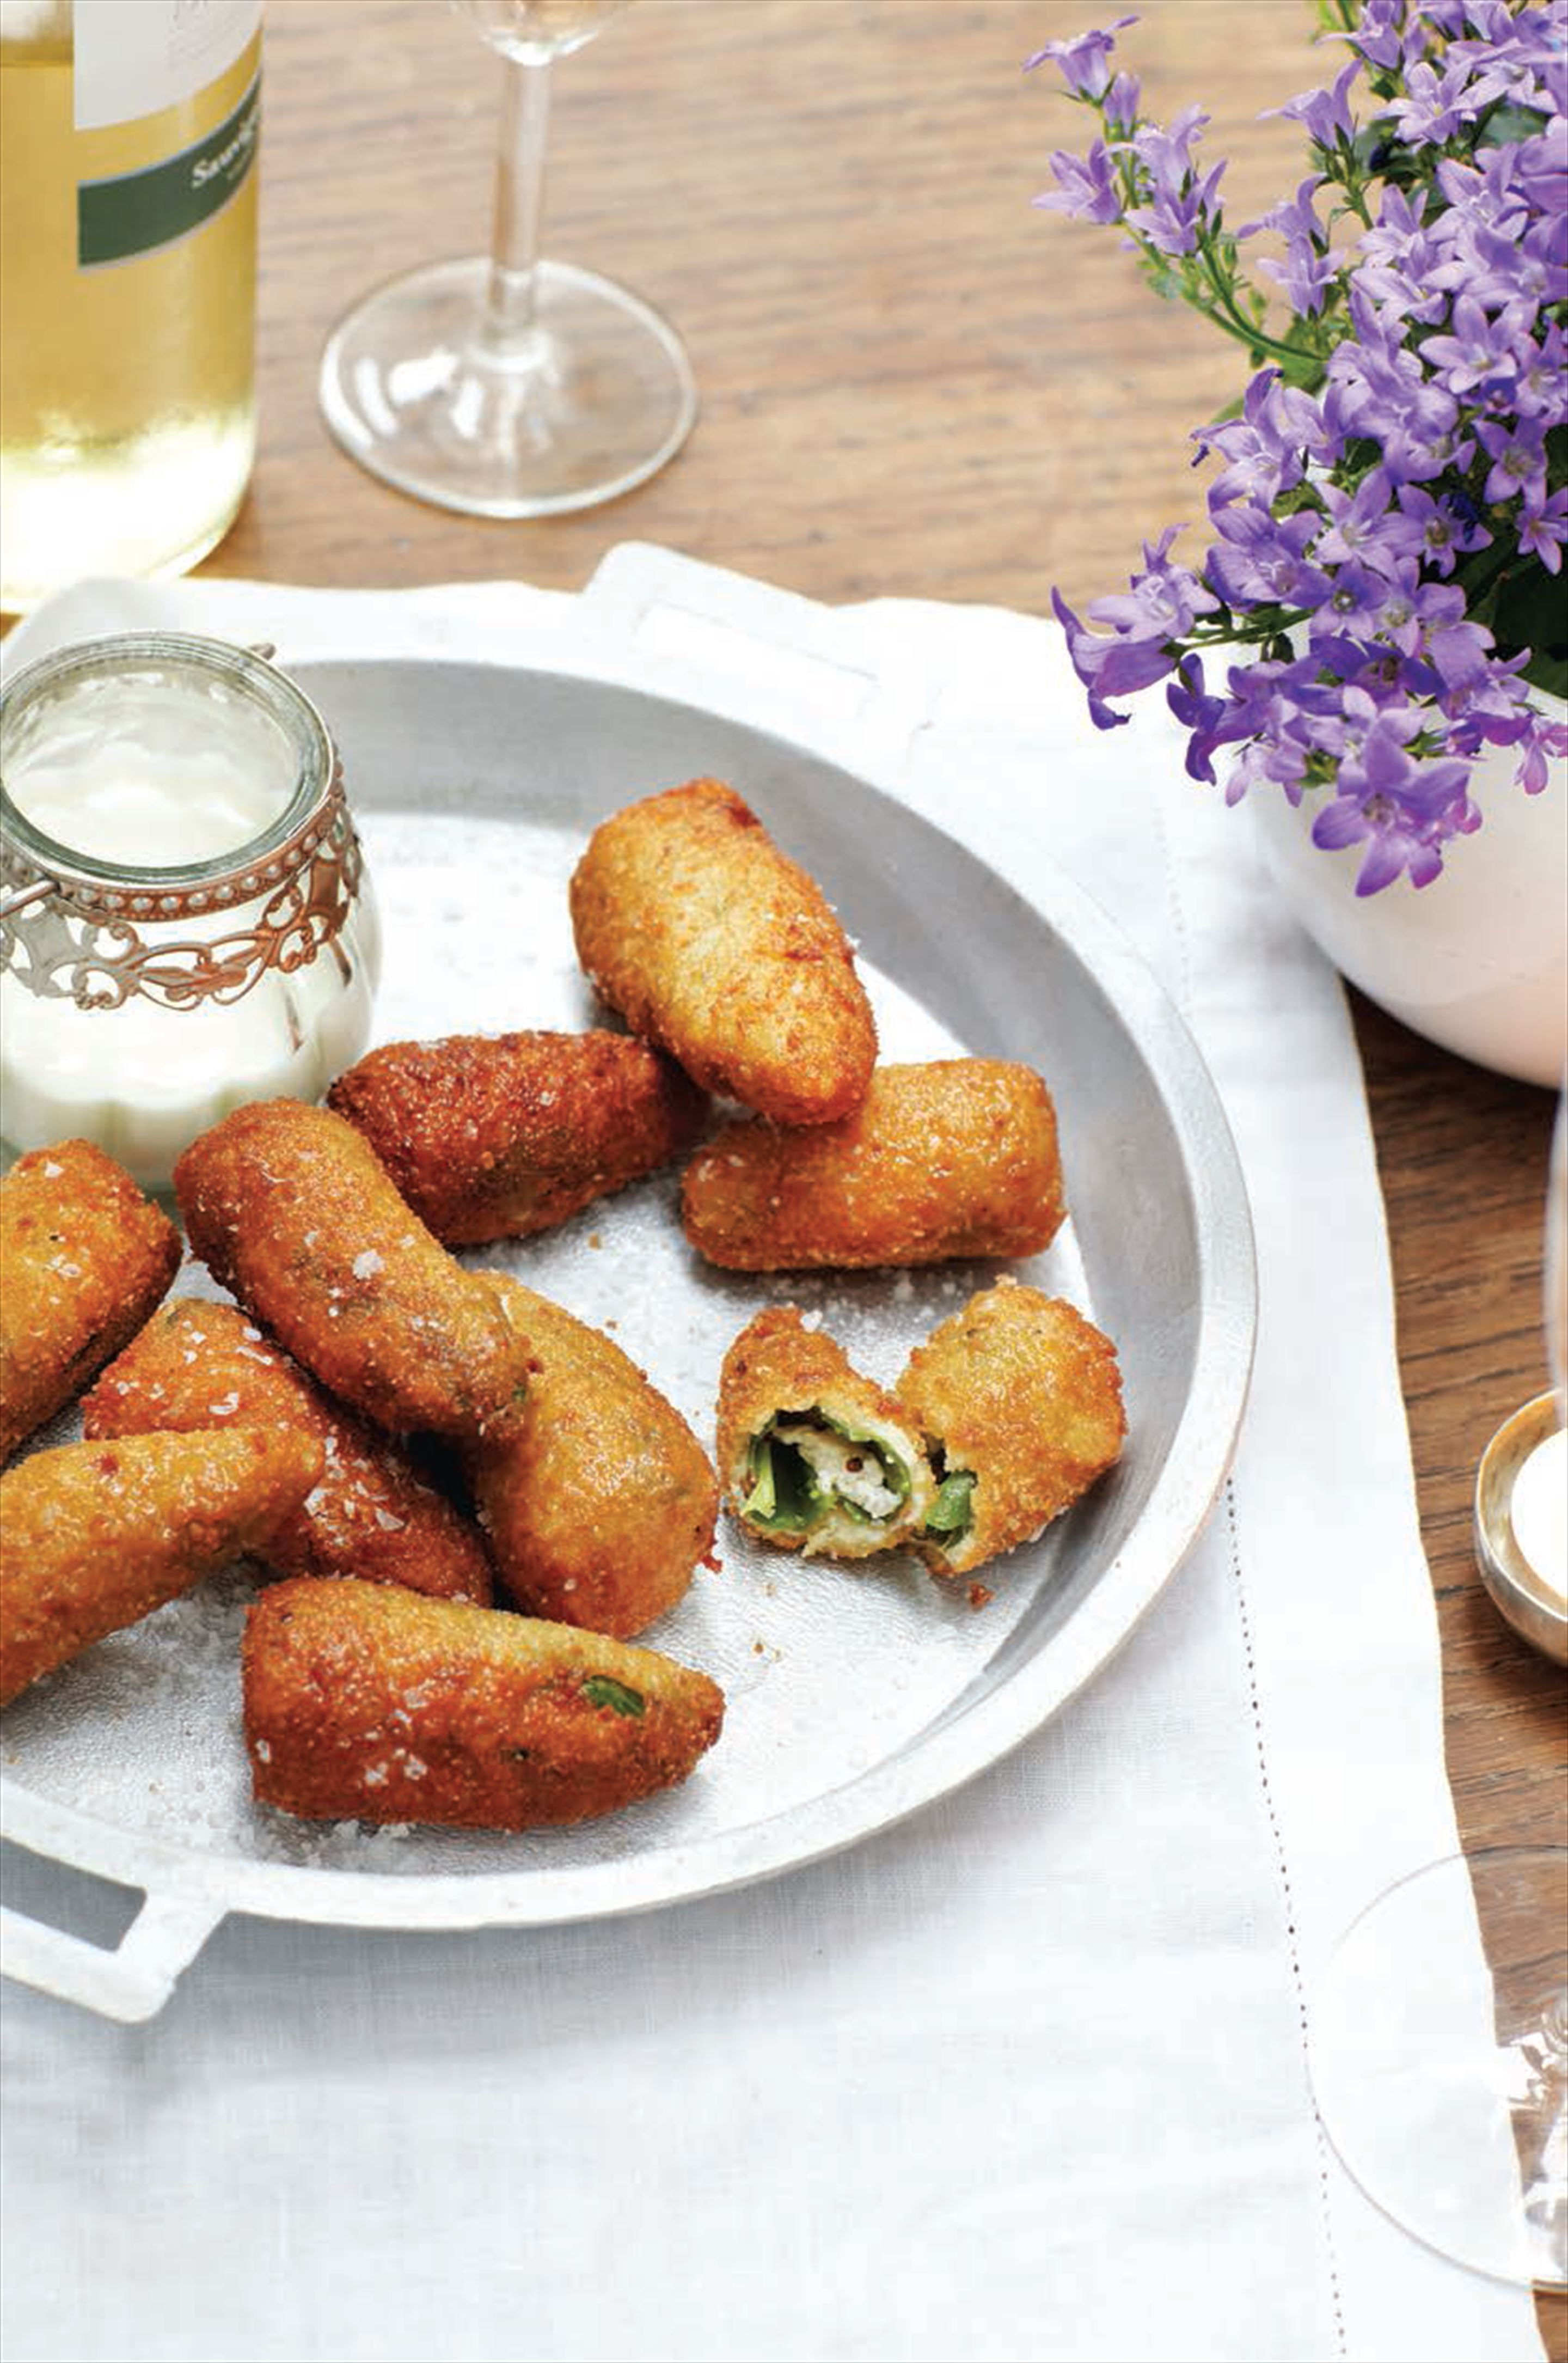 Breaded padron peppers stuffed with goat's cheese